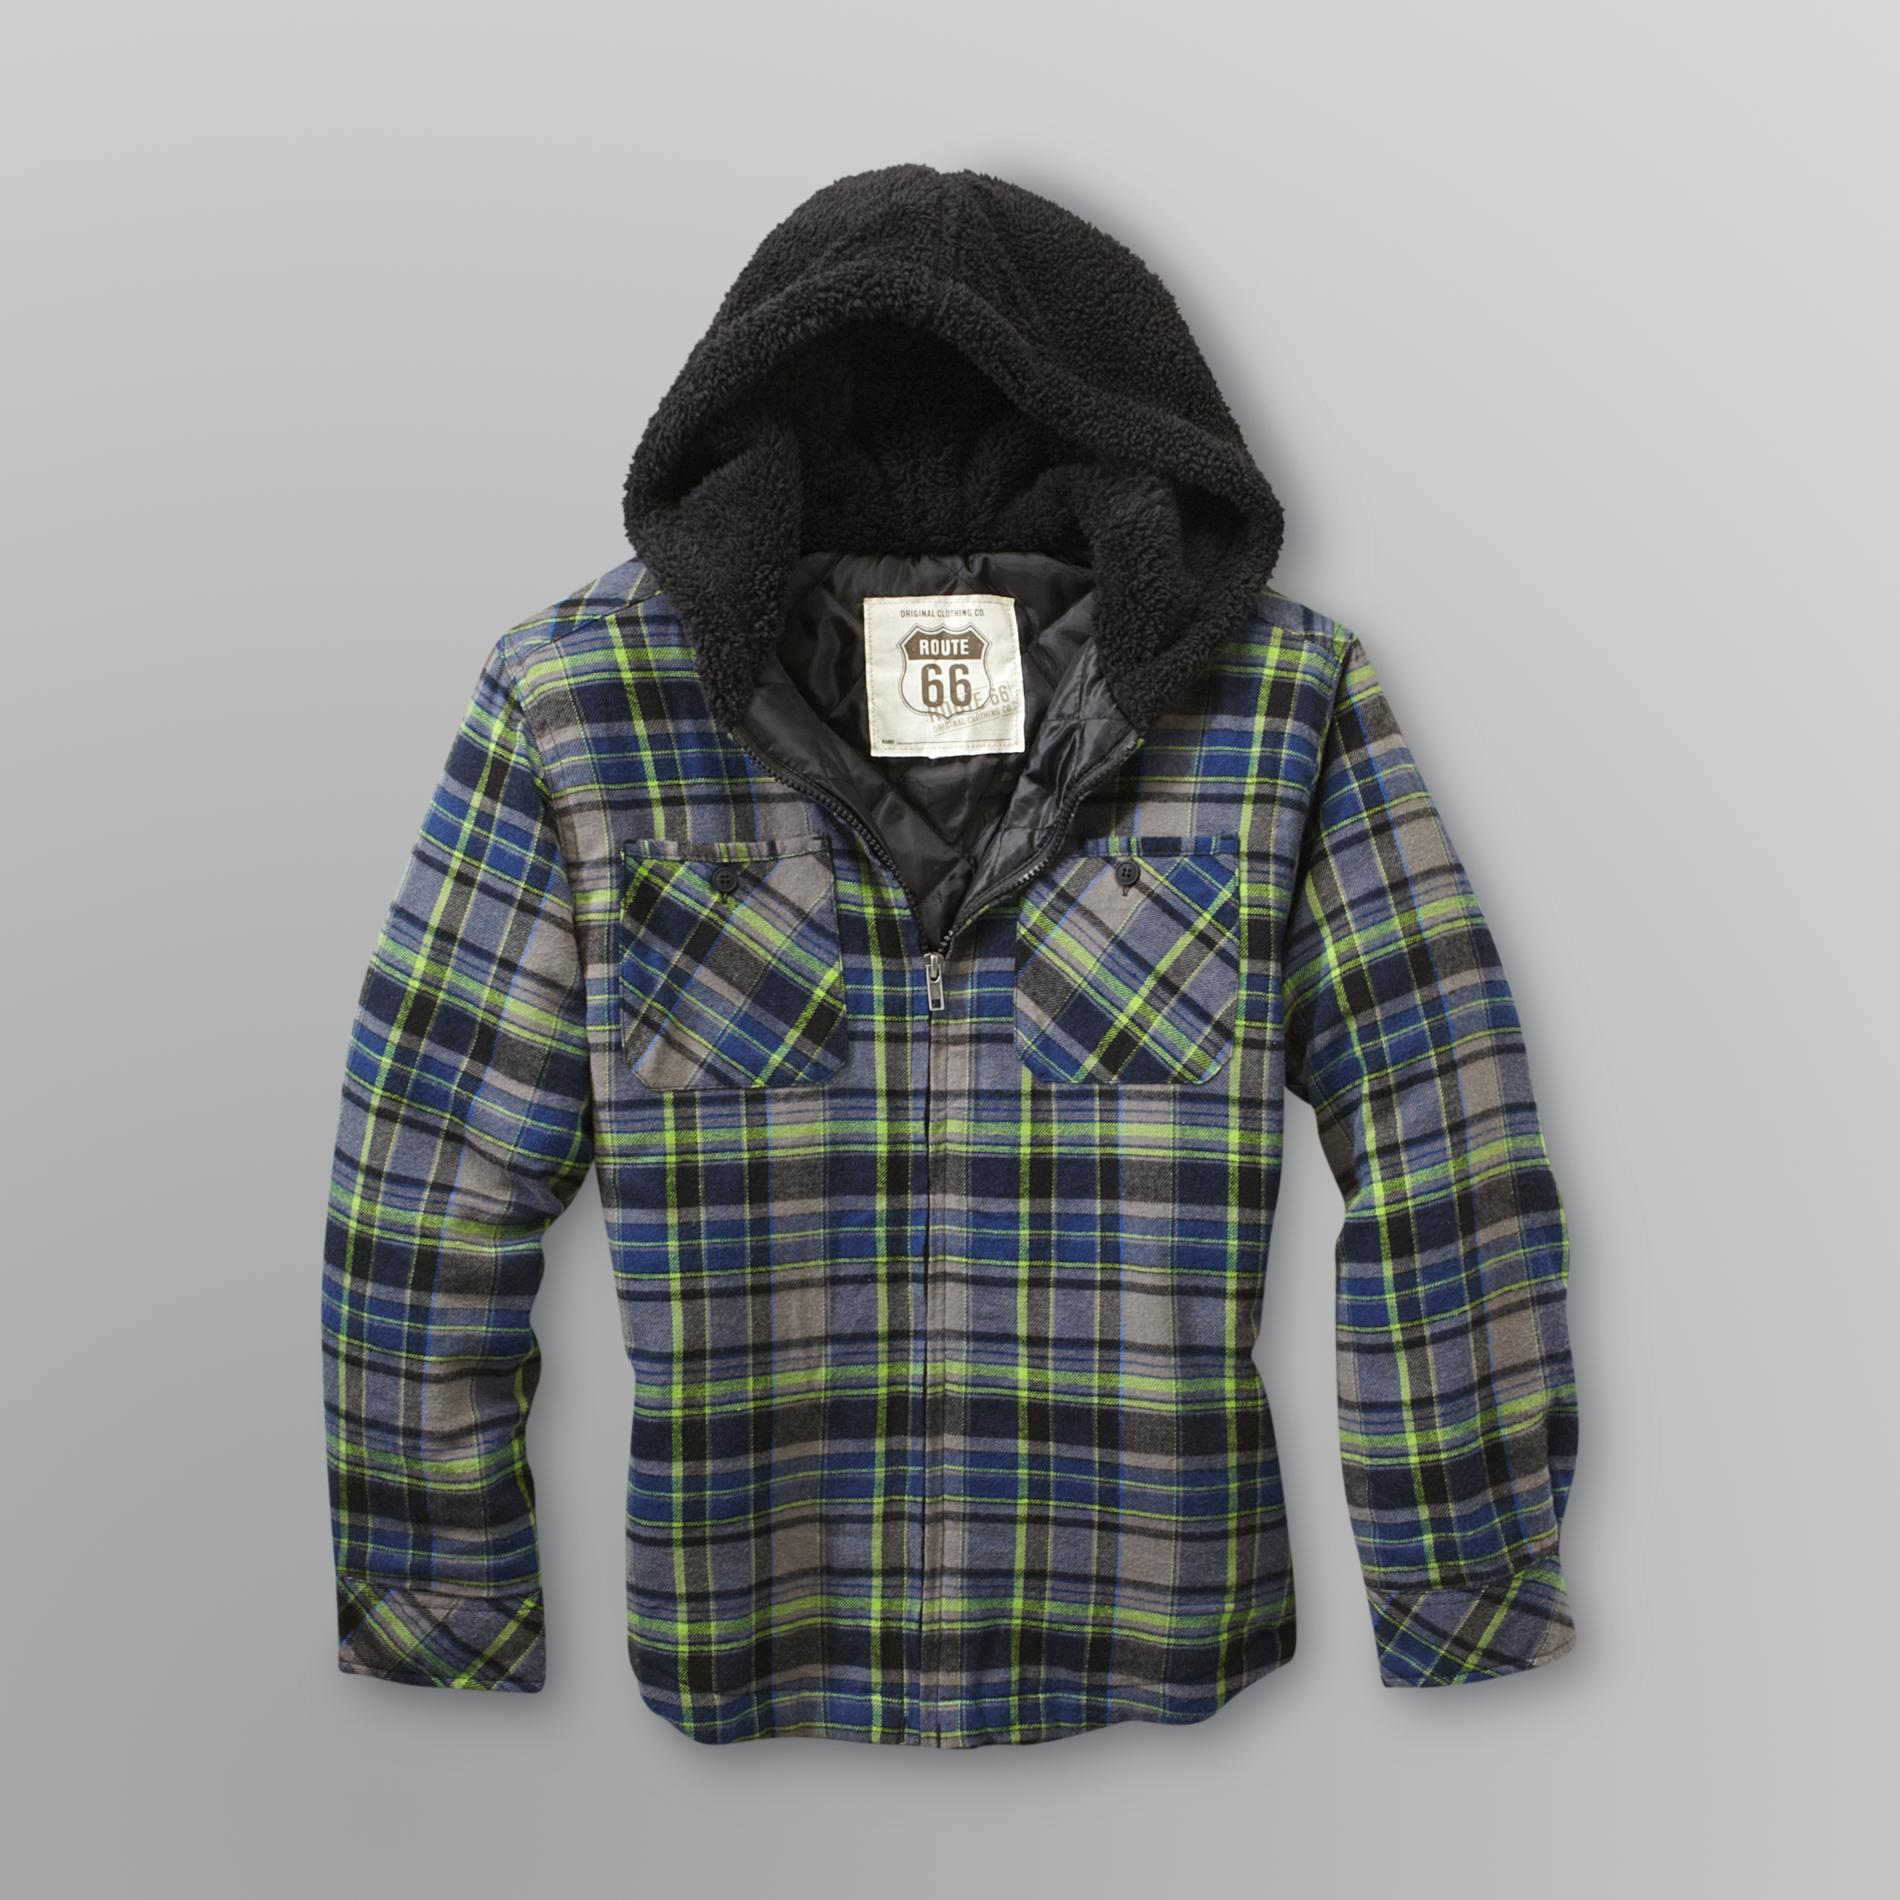 Route 66 Boy's Hooded Flannel Shirt Jacket - Plaid